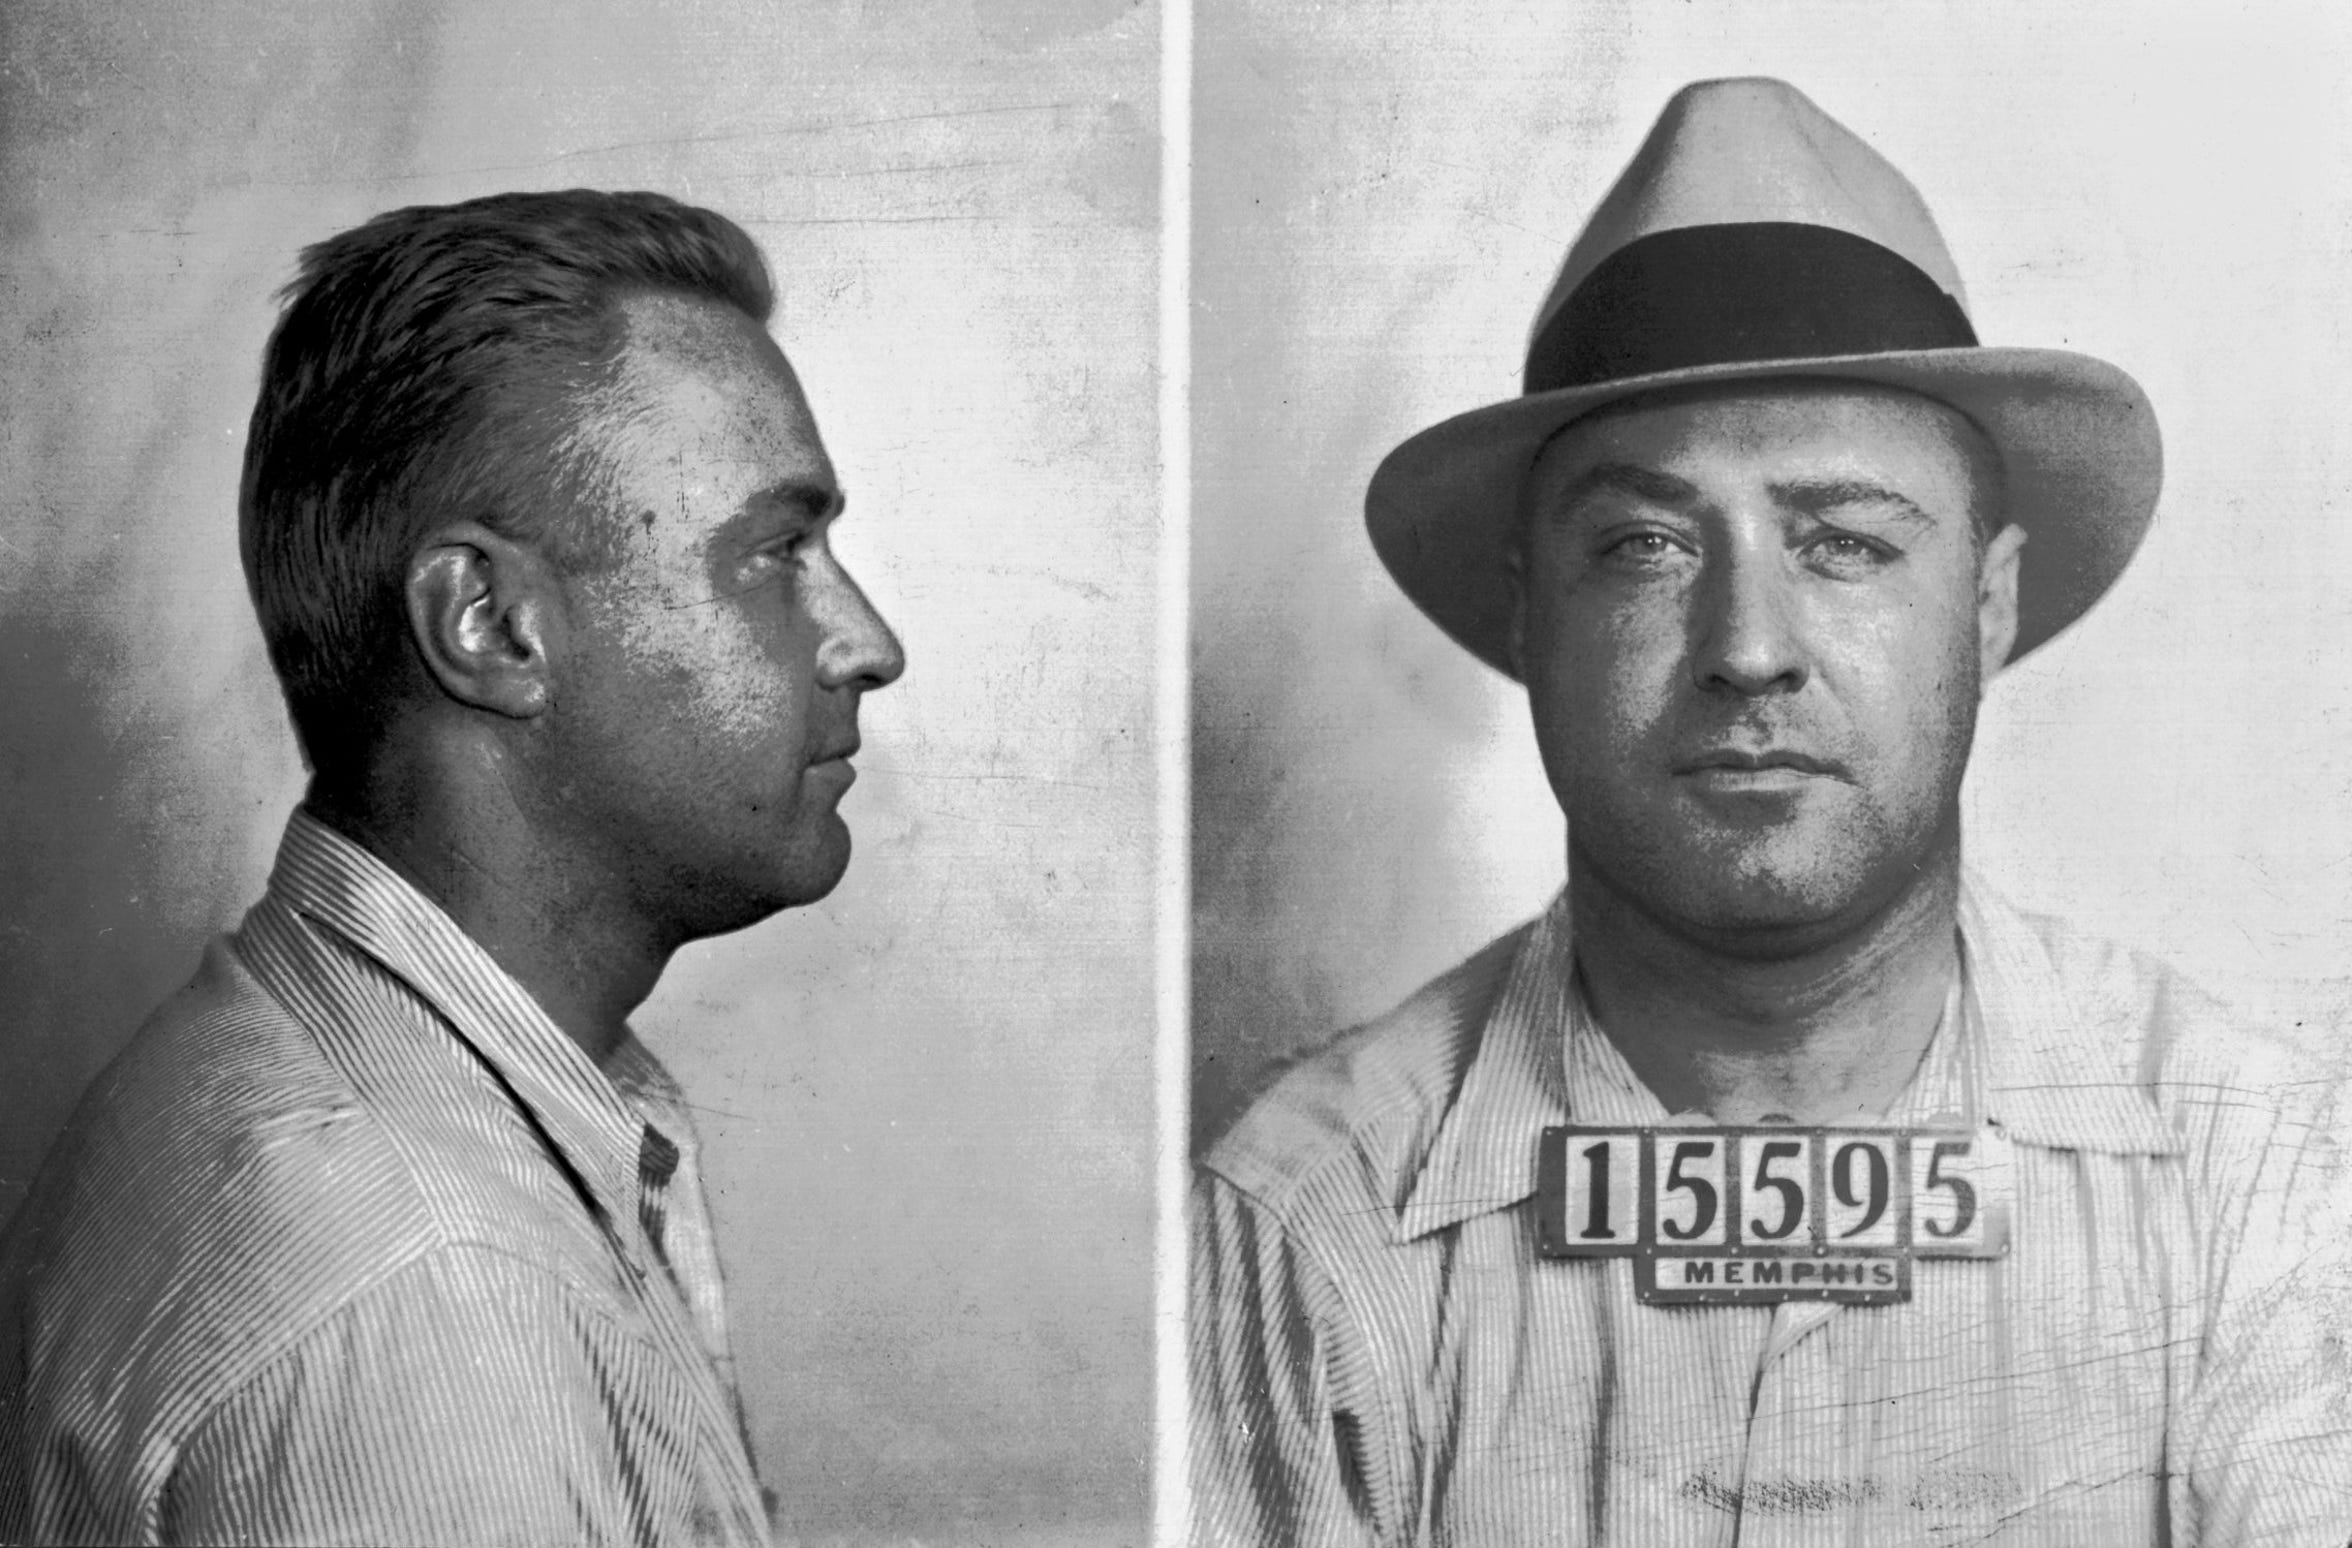 """""""I'll be out of this jail before long - they've got me, but keeping me is another thing"""", George """"Machine Gun"""" Kelly told a Memphis Press-Scimitar reporter when he was cornered and captured in Memphis. Less than a week later on Sunday, October 1, 1933, """"Machine Gun"""" did get out but only to be transported to the Memphis Airport for transport to Oklahoma City for his trial in the kidnapping of Charles F. Urschel, a wealthy oil executive of Oklahoma City."""